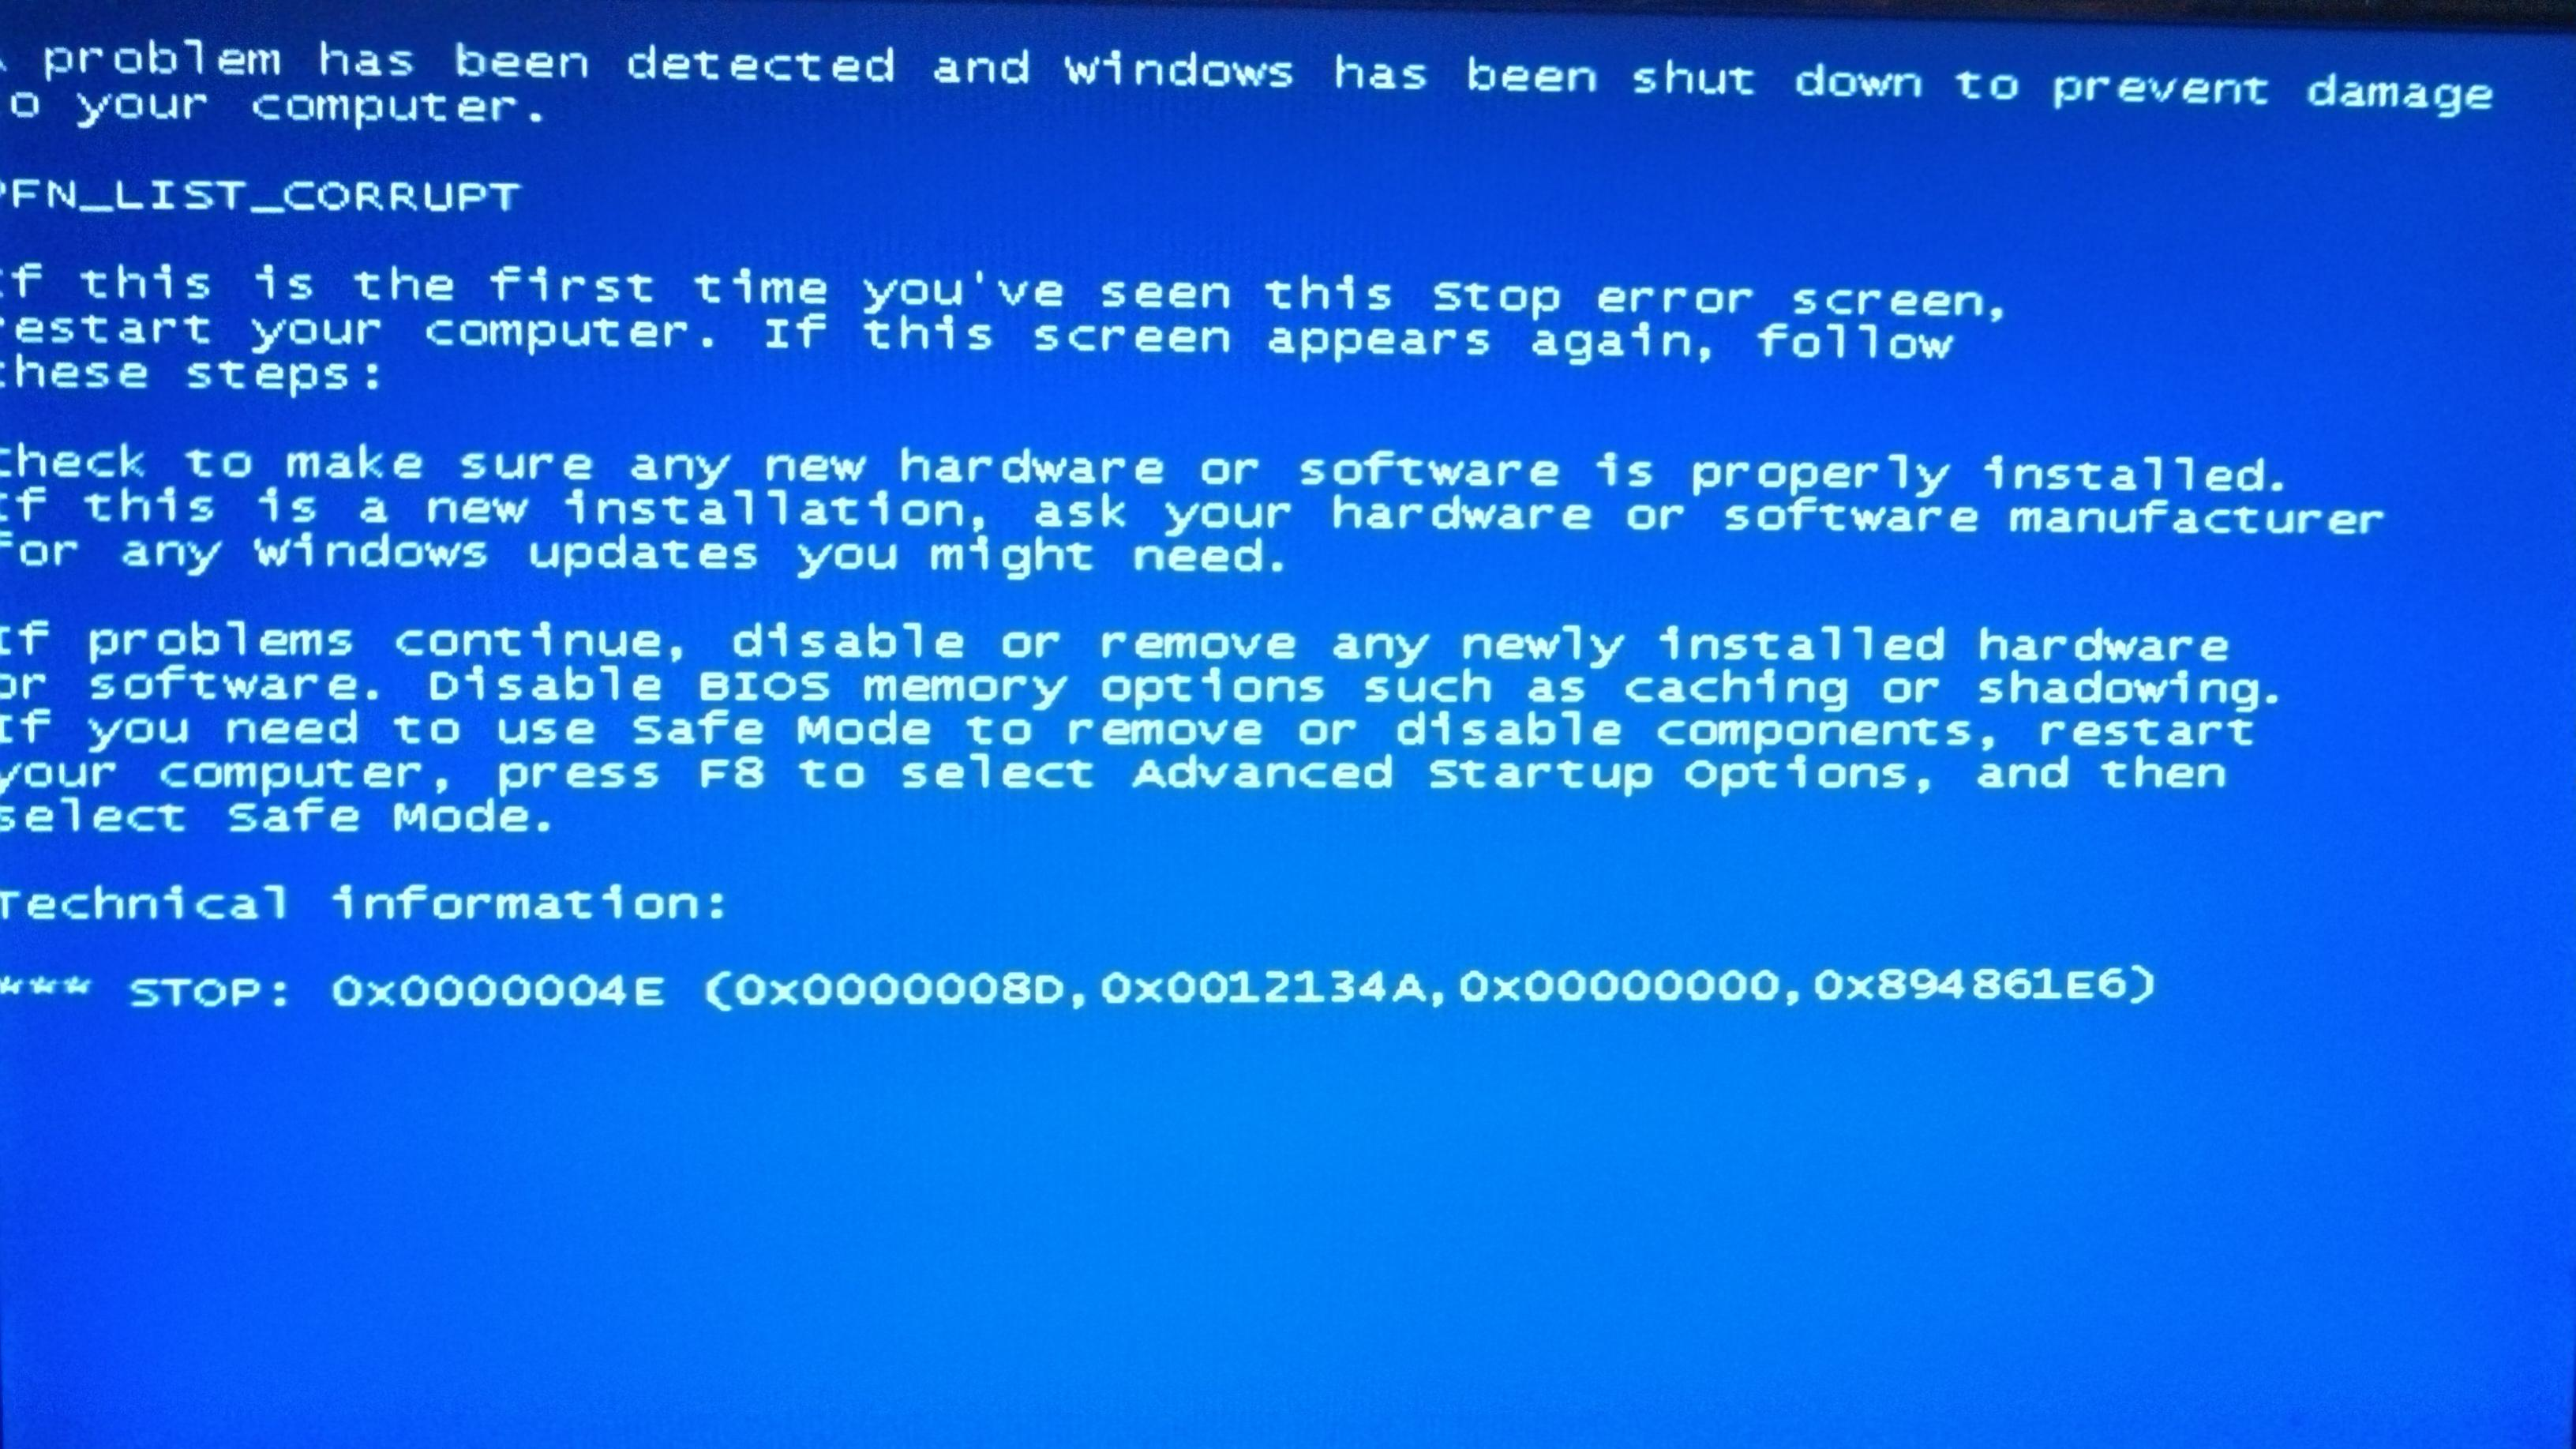 How to resolve windows blue screen problem